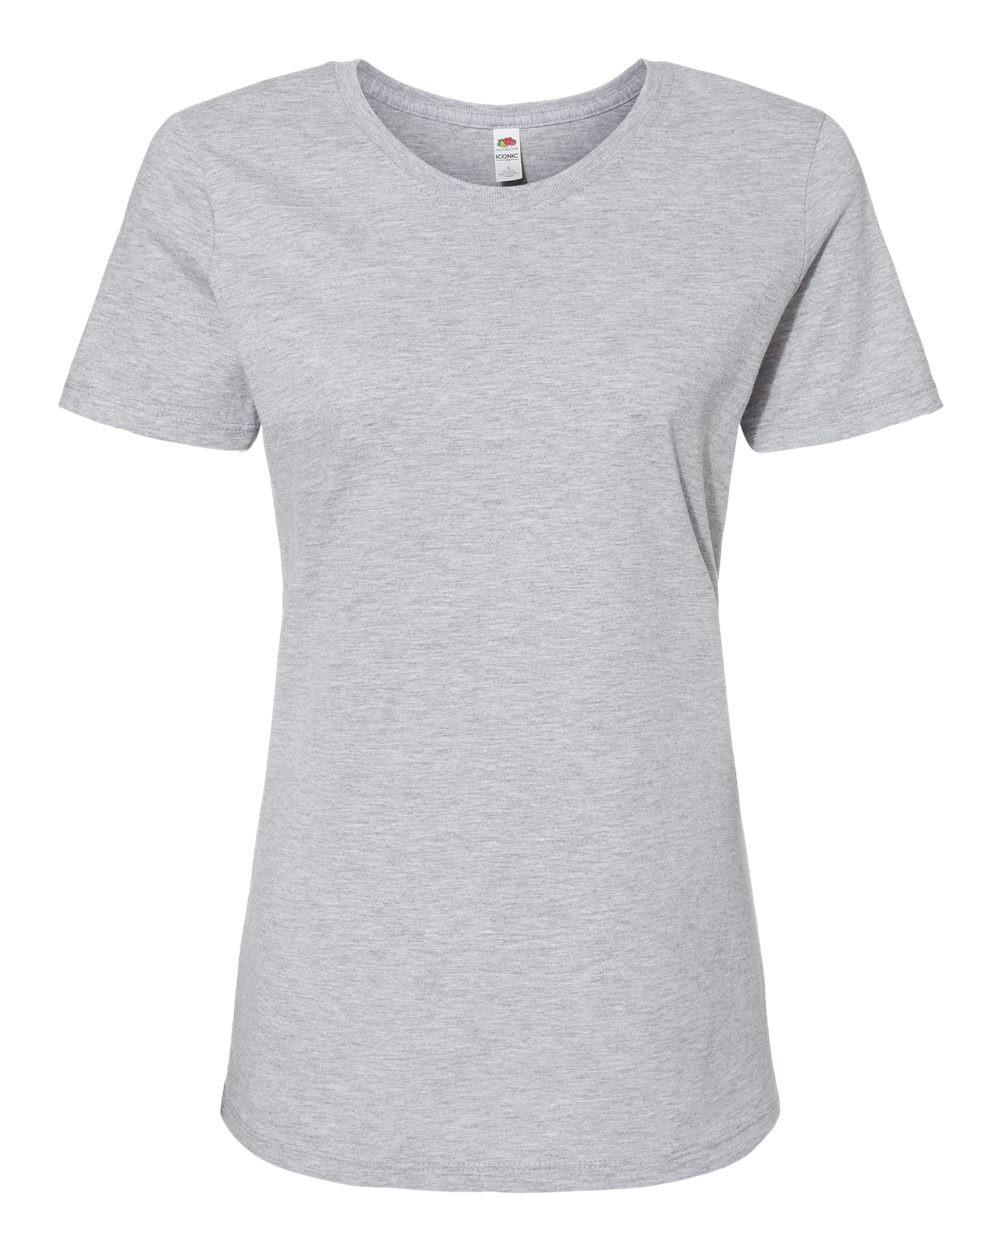 Fruit of the Loom IC47WR - Women's Iconic T-Shirt